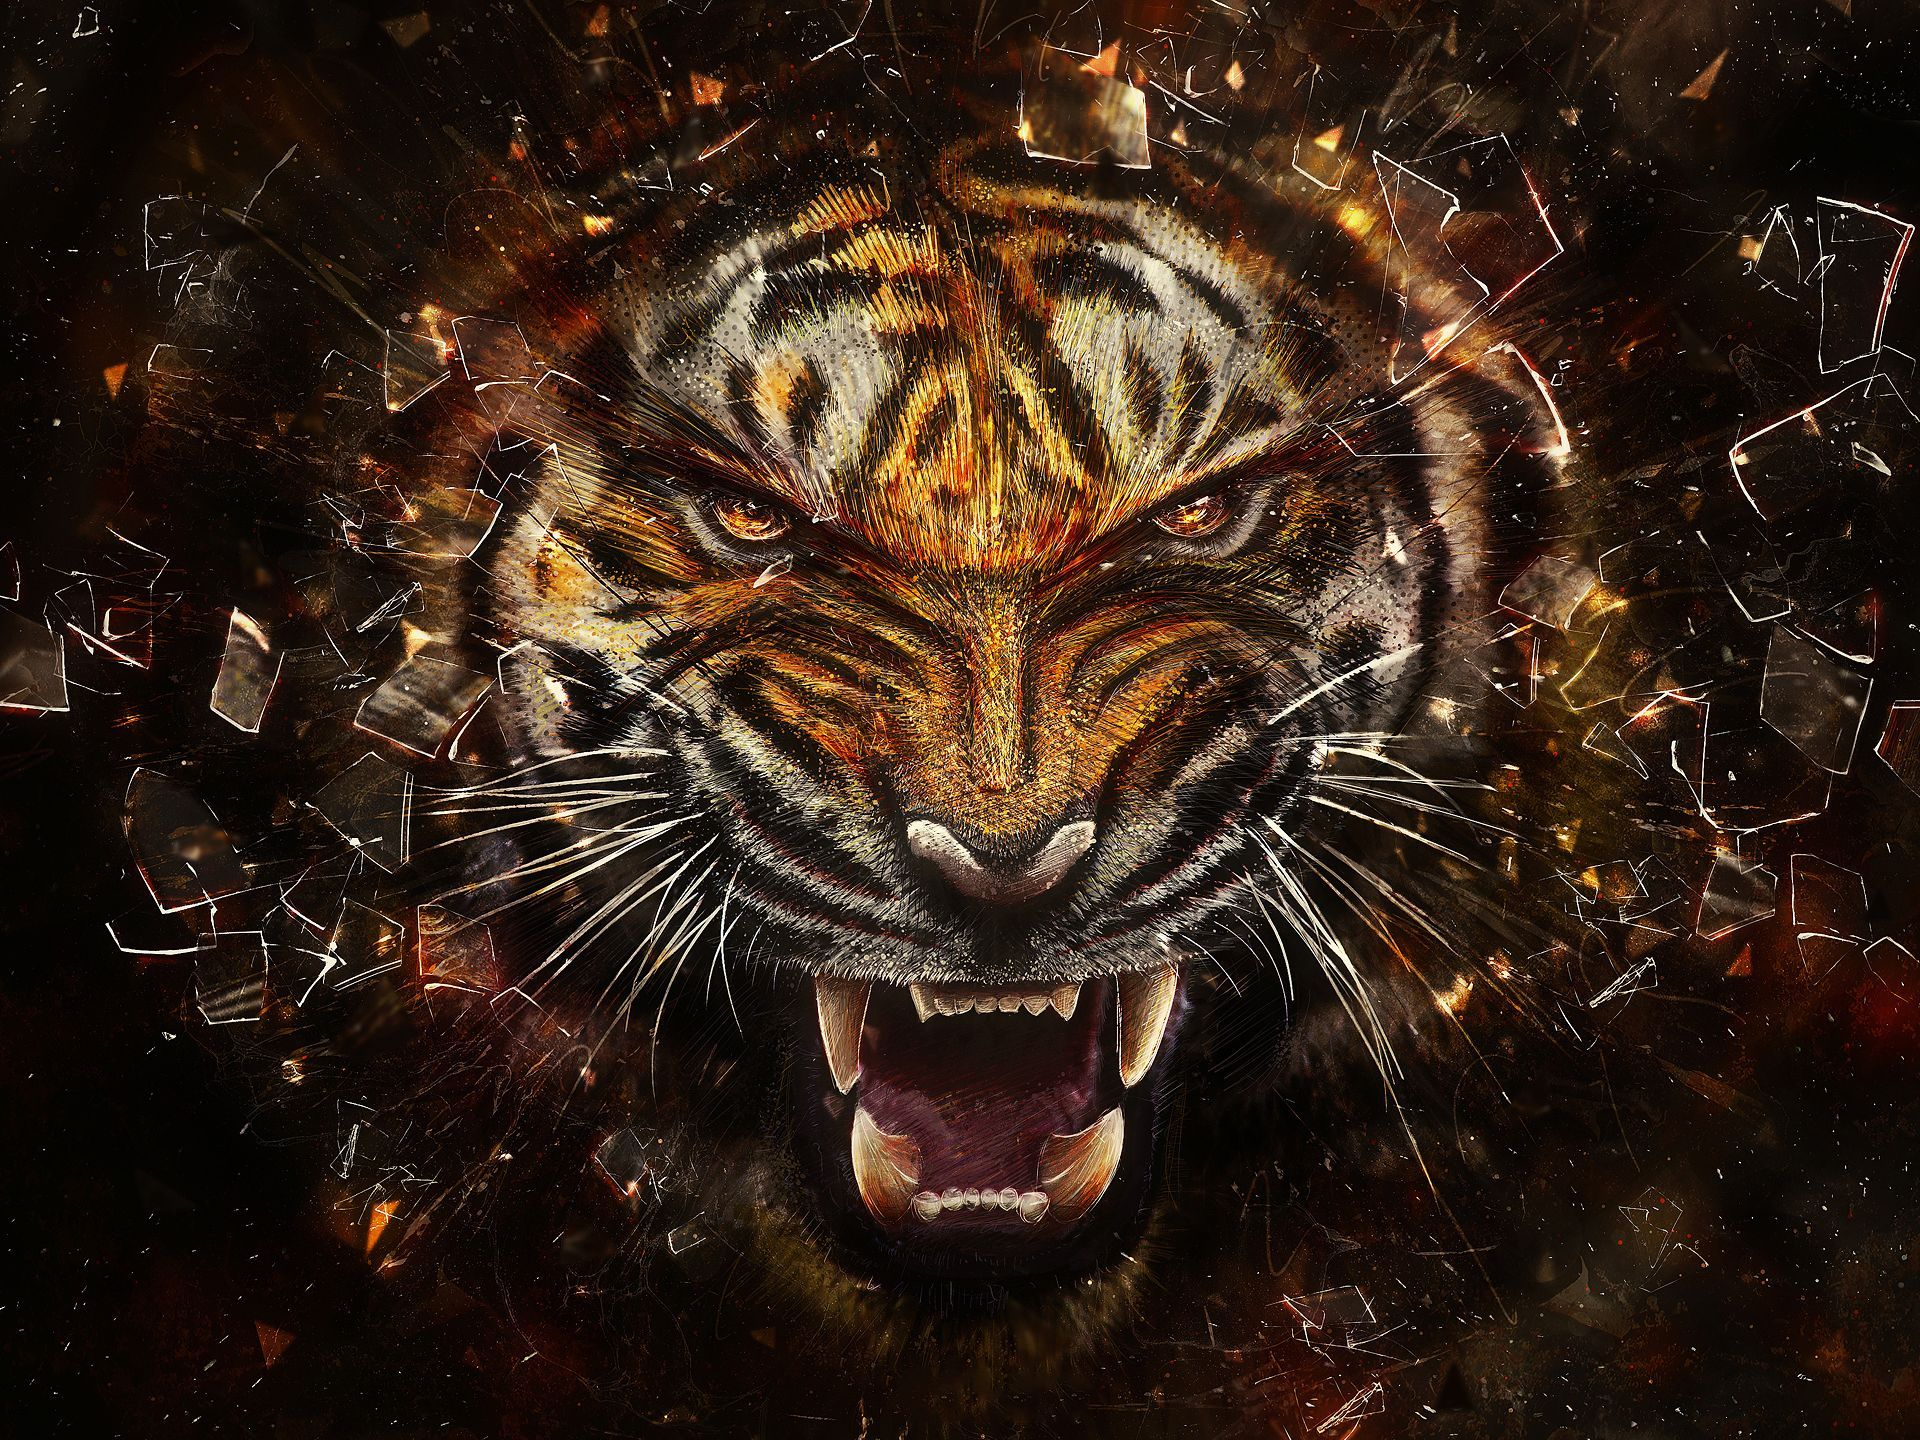 Fantasy Landscape Tiger Download Brown Tiger 3d Wallpapers With